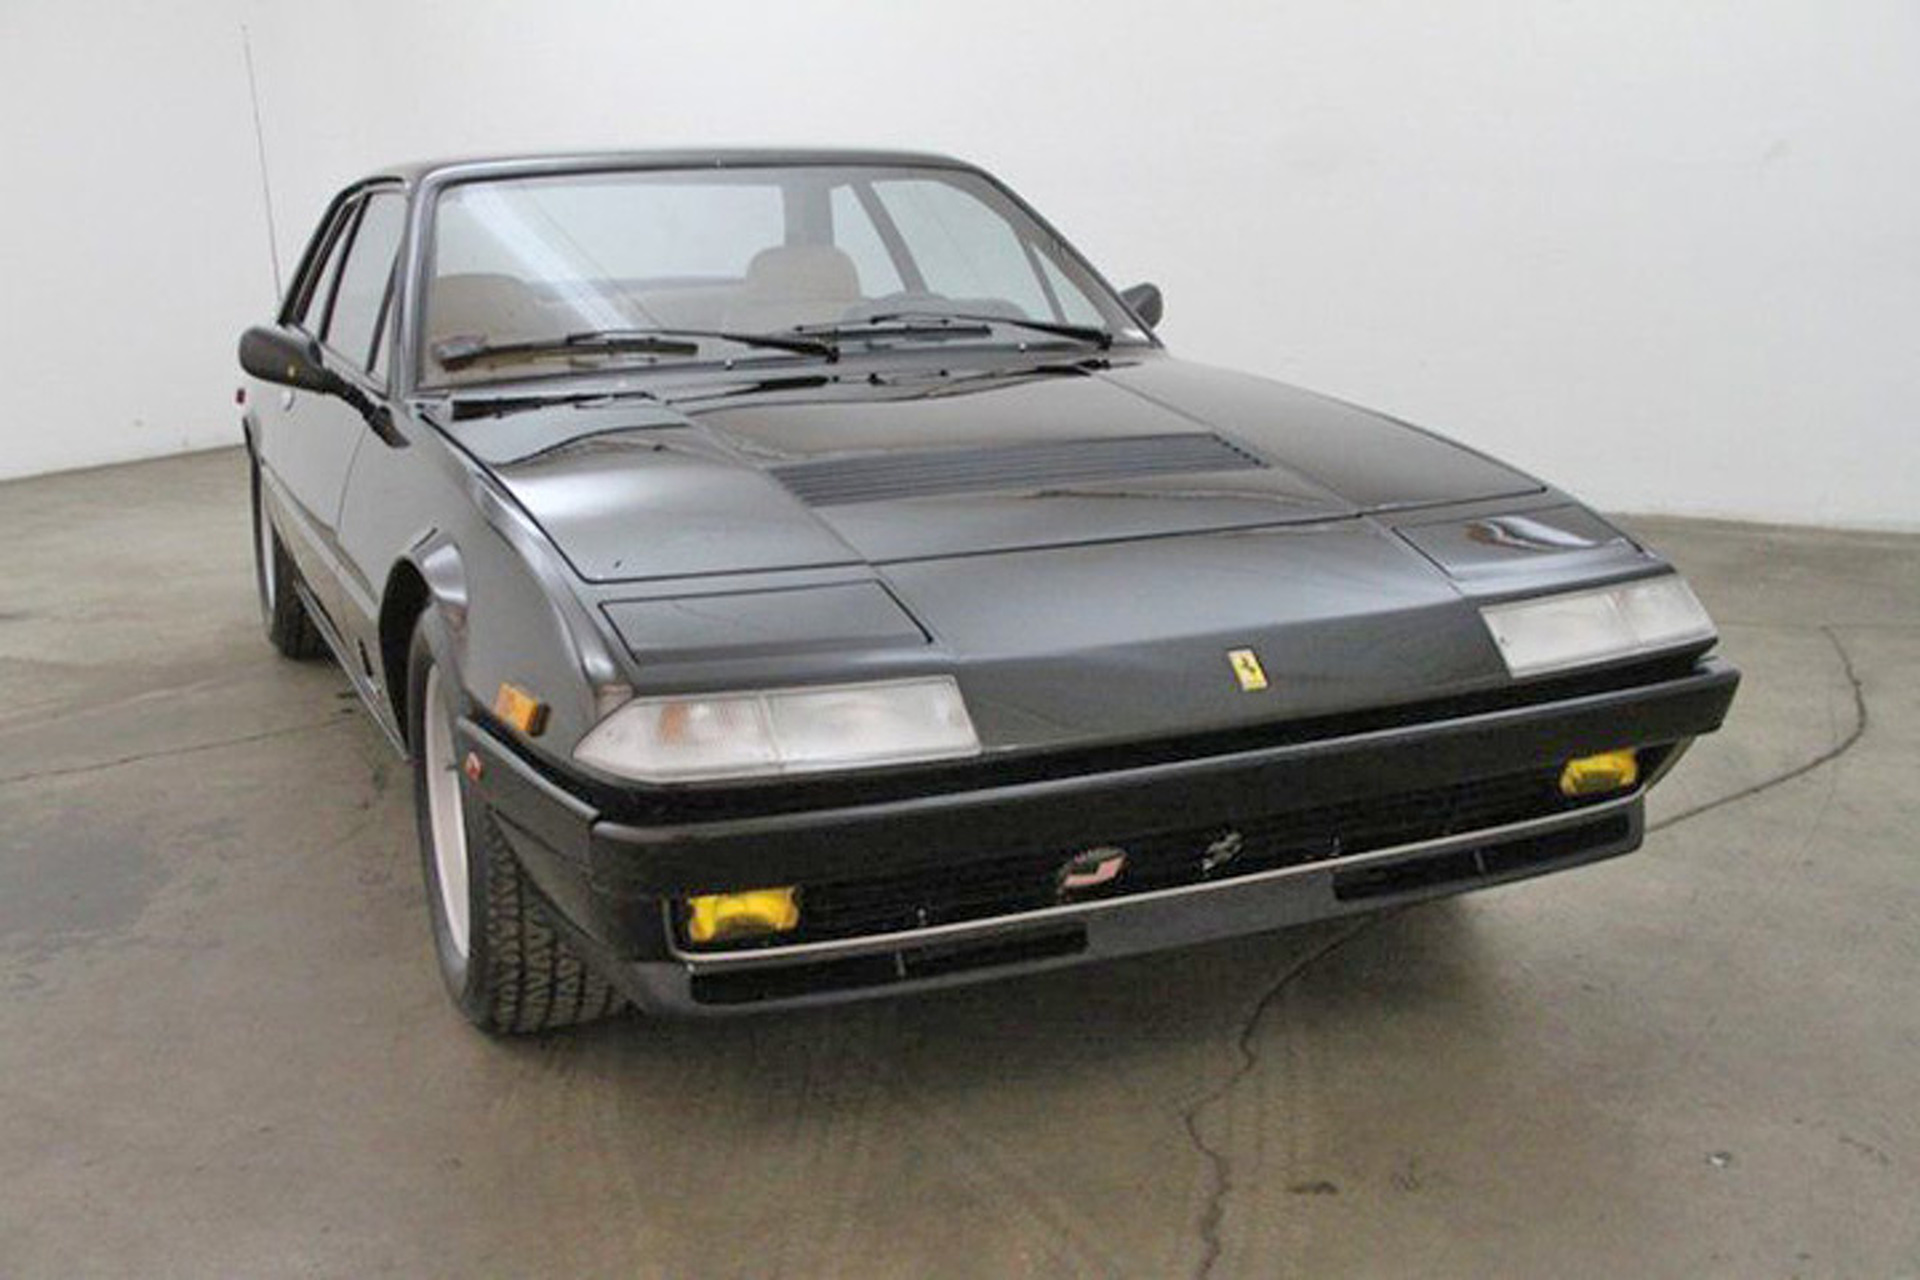 Legend car body for sale - John Mcenroe S Ferrari For Sale On Ebay